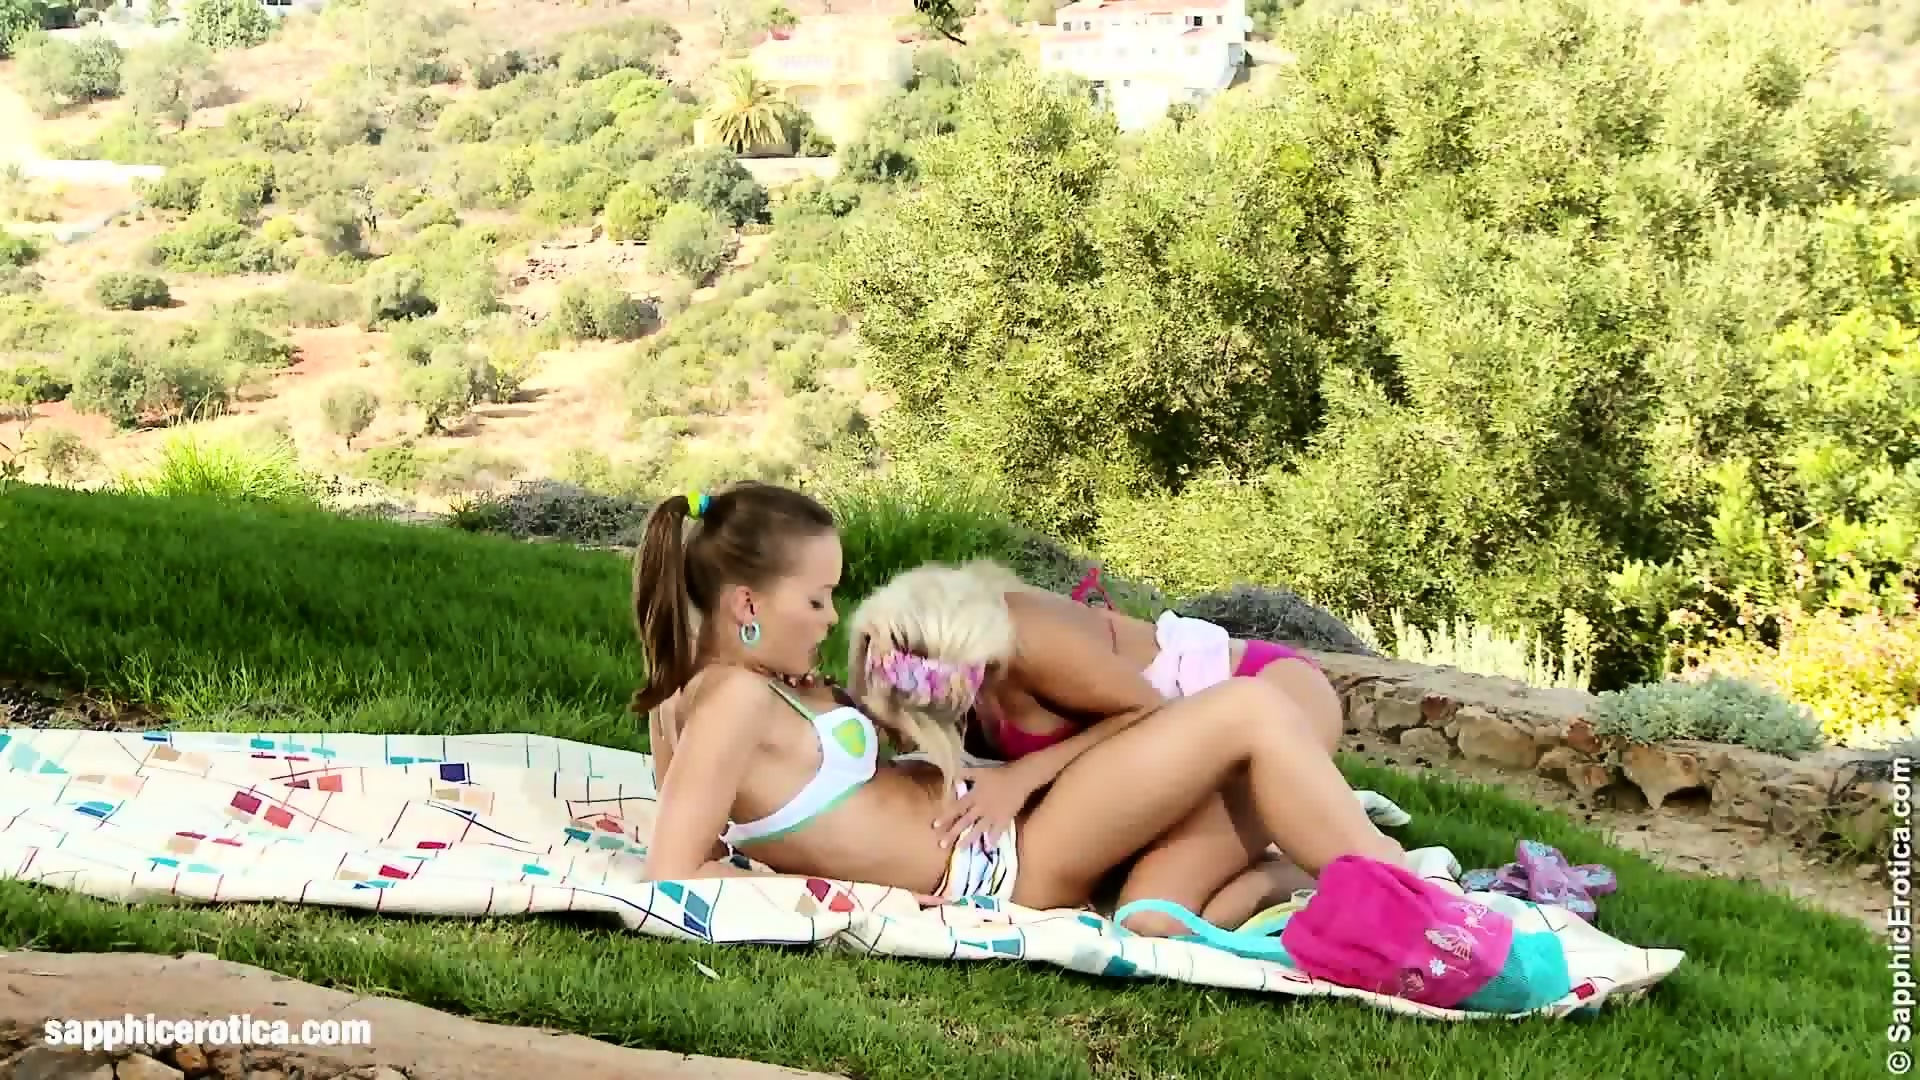 Tonguing temptations by sapphic erotica lesbian love porn with dara ane 3